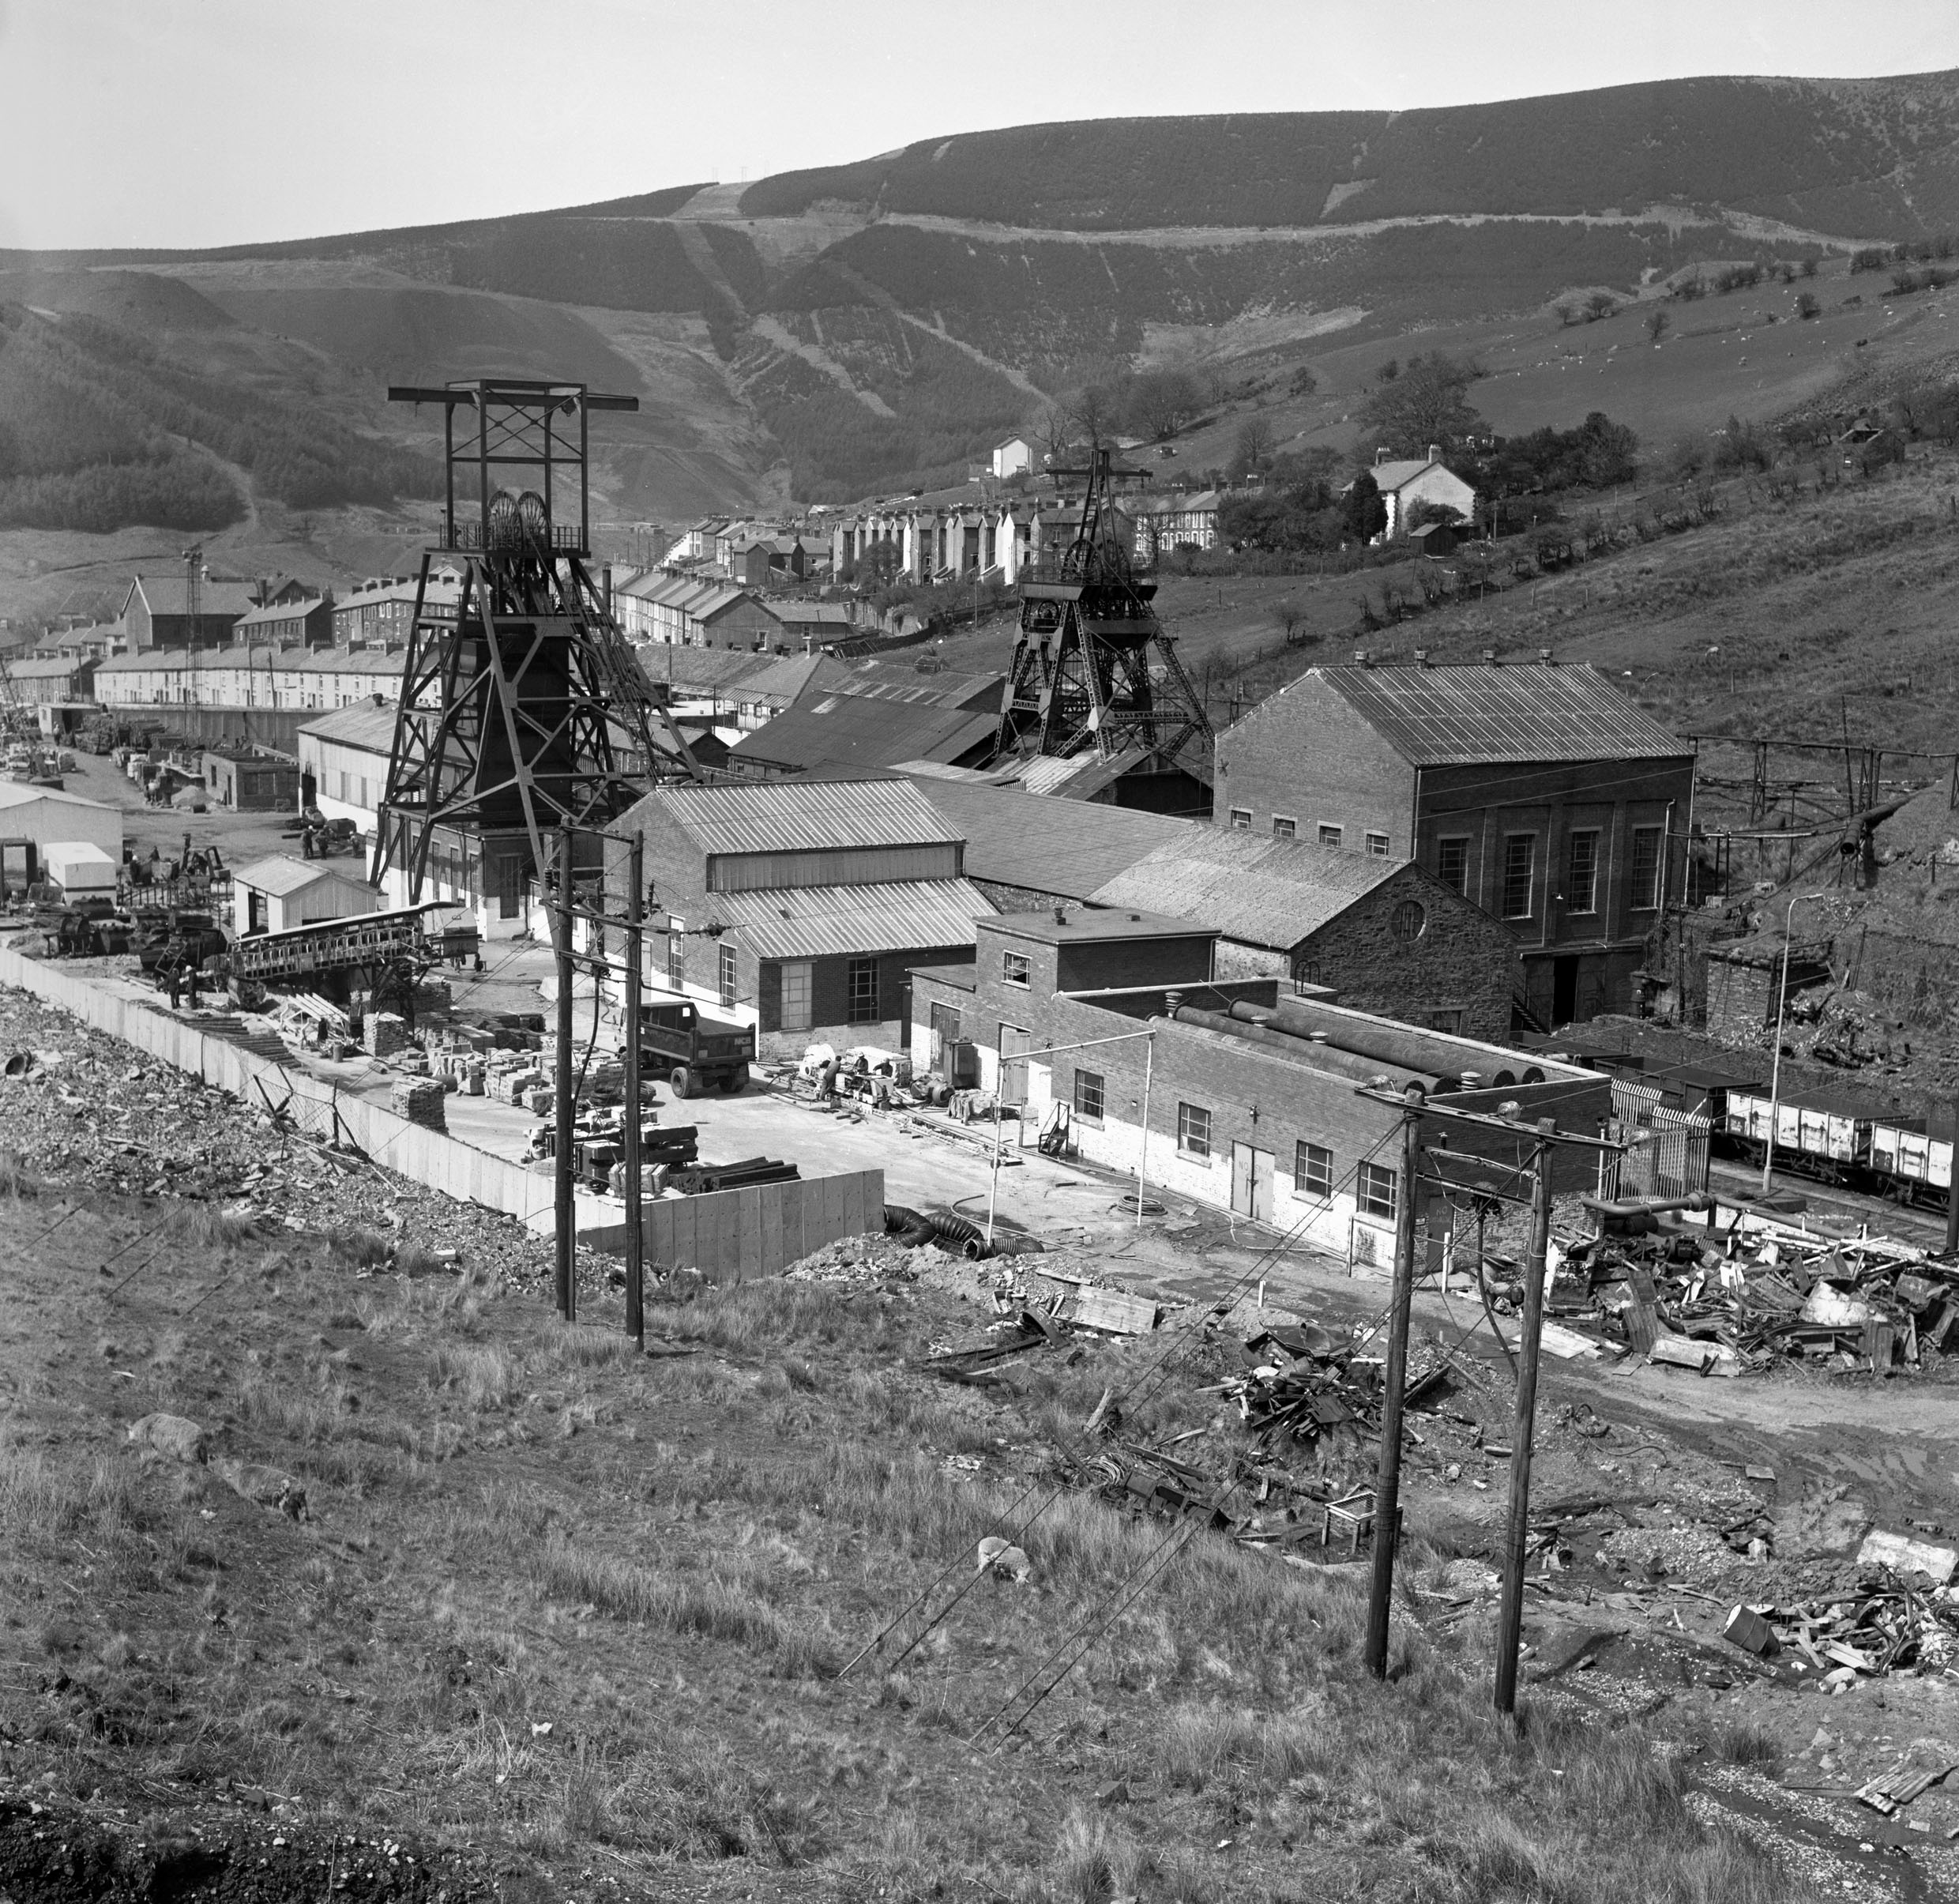 Garw Colliery in 1977, with village in the background.